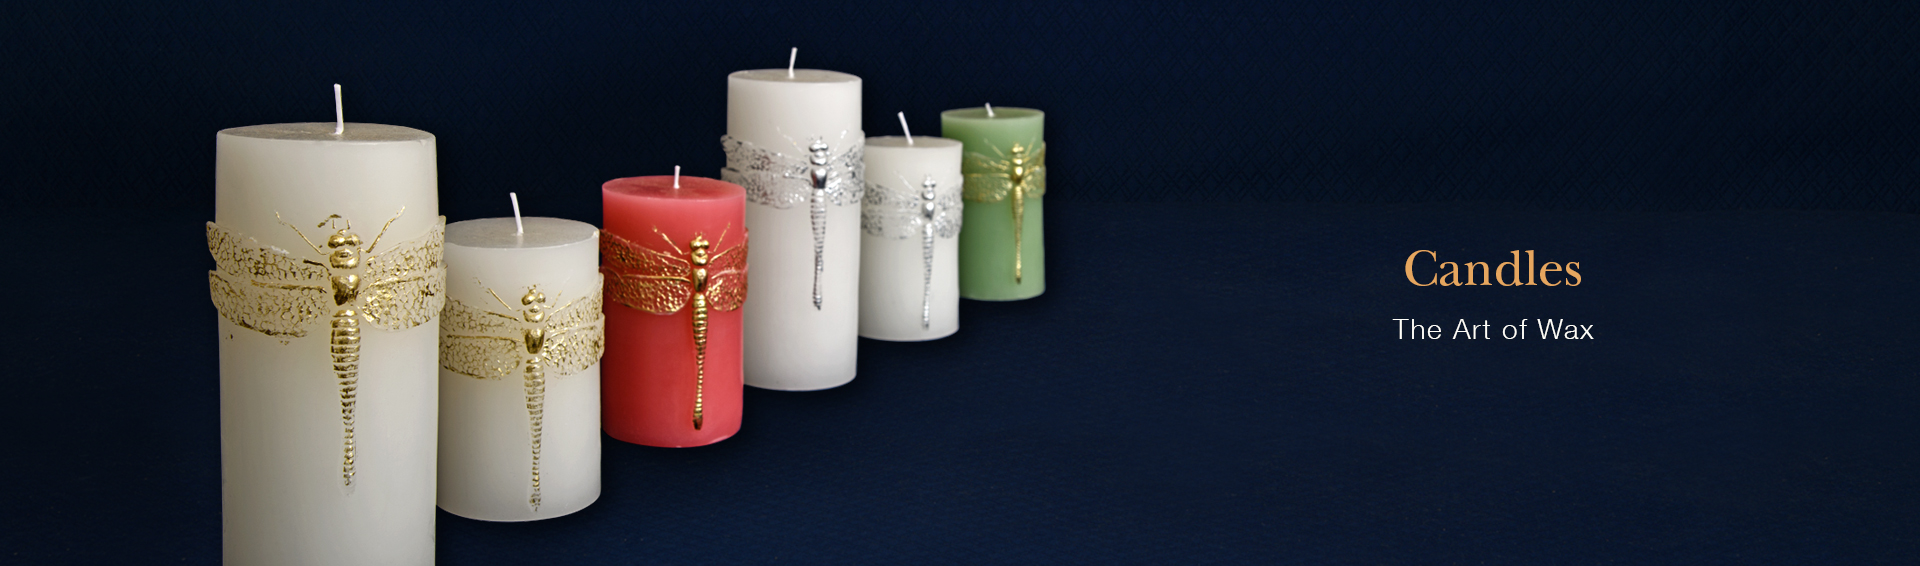 Buy Candles Online Candles Buy Luxury Decorative Pillar Candles Online In India